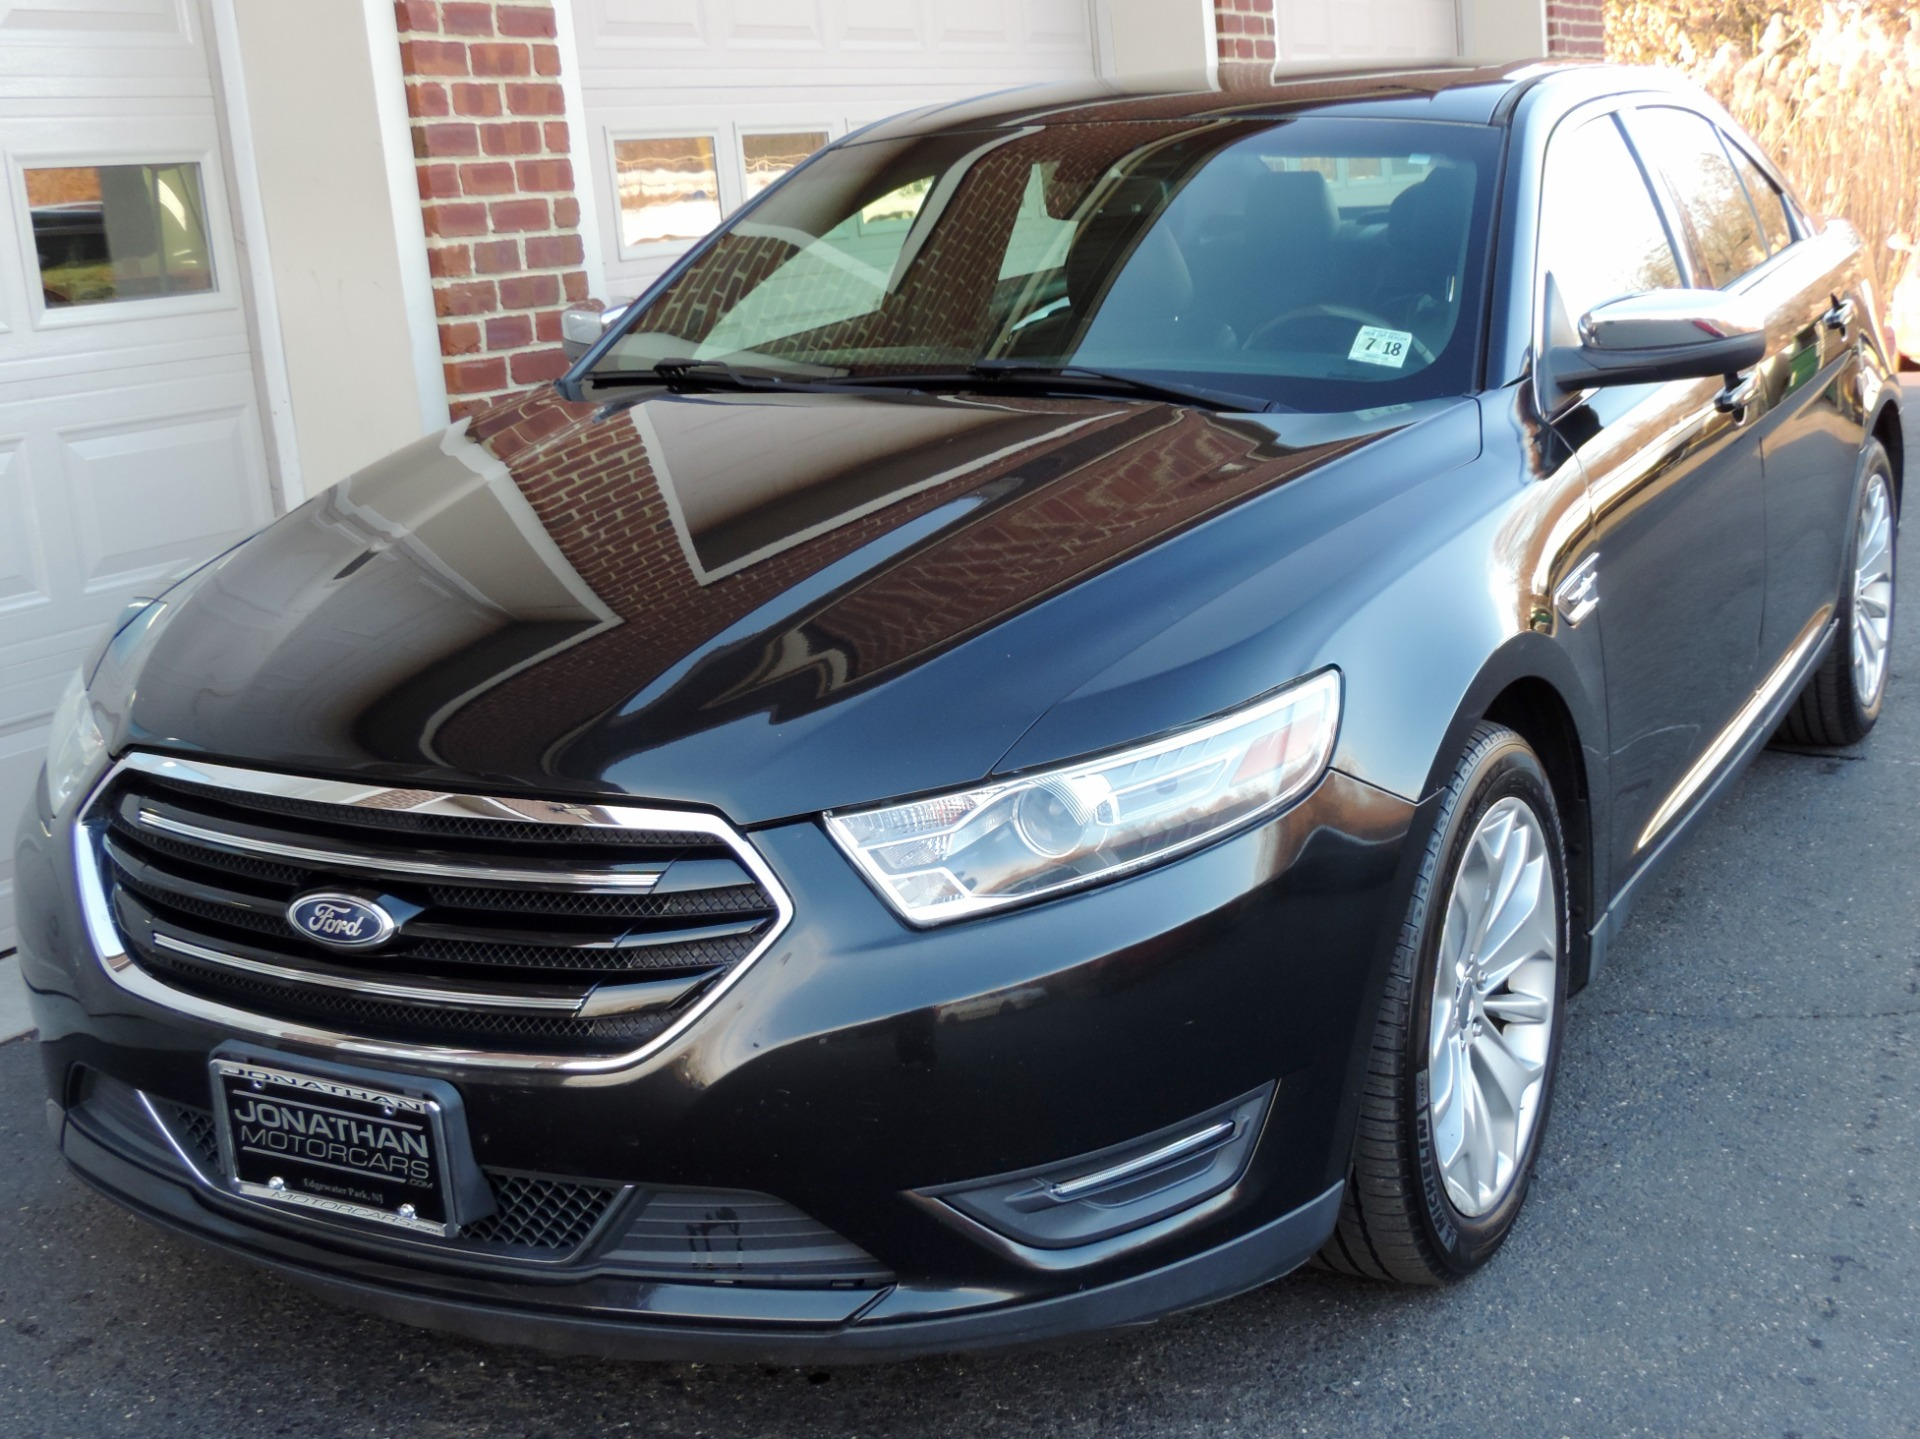 2013 ford taurus limited stock 121917 for sale near edgewater park nj nj ford dealer. Black Bedroom Furniture Sets. Home Design Ideas